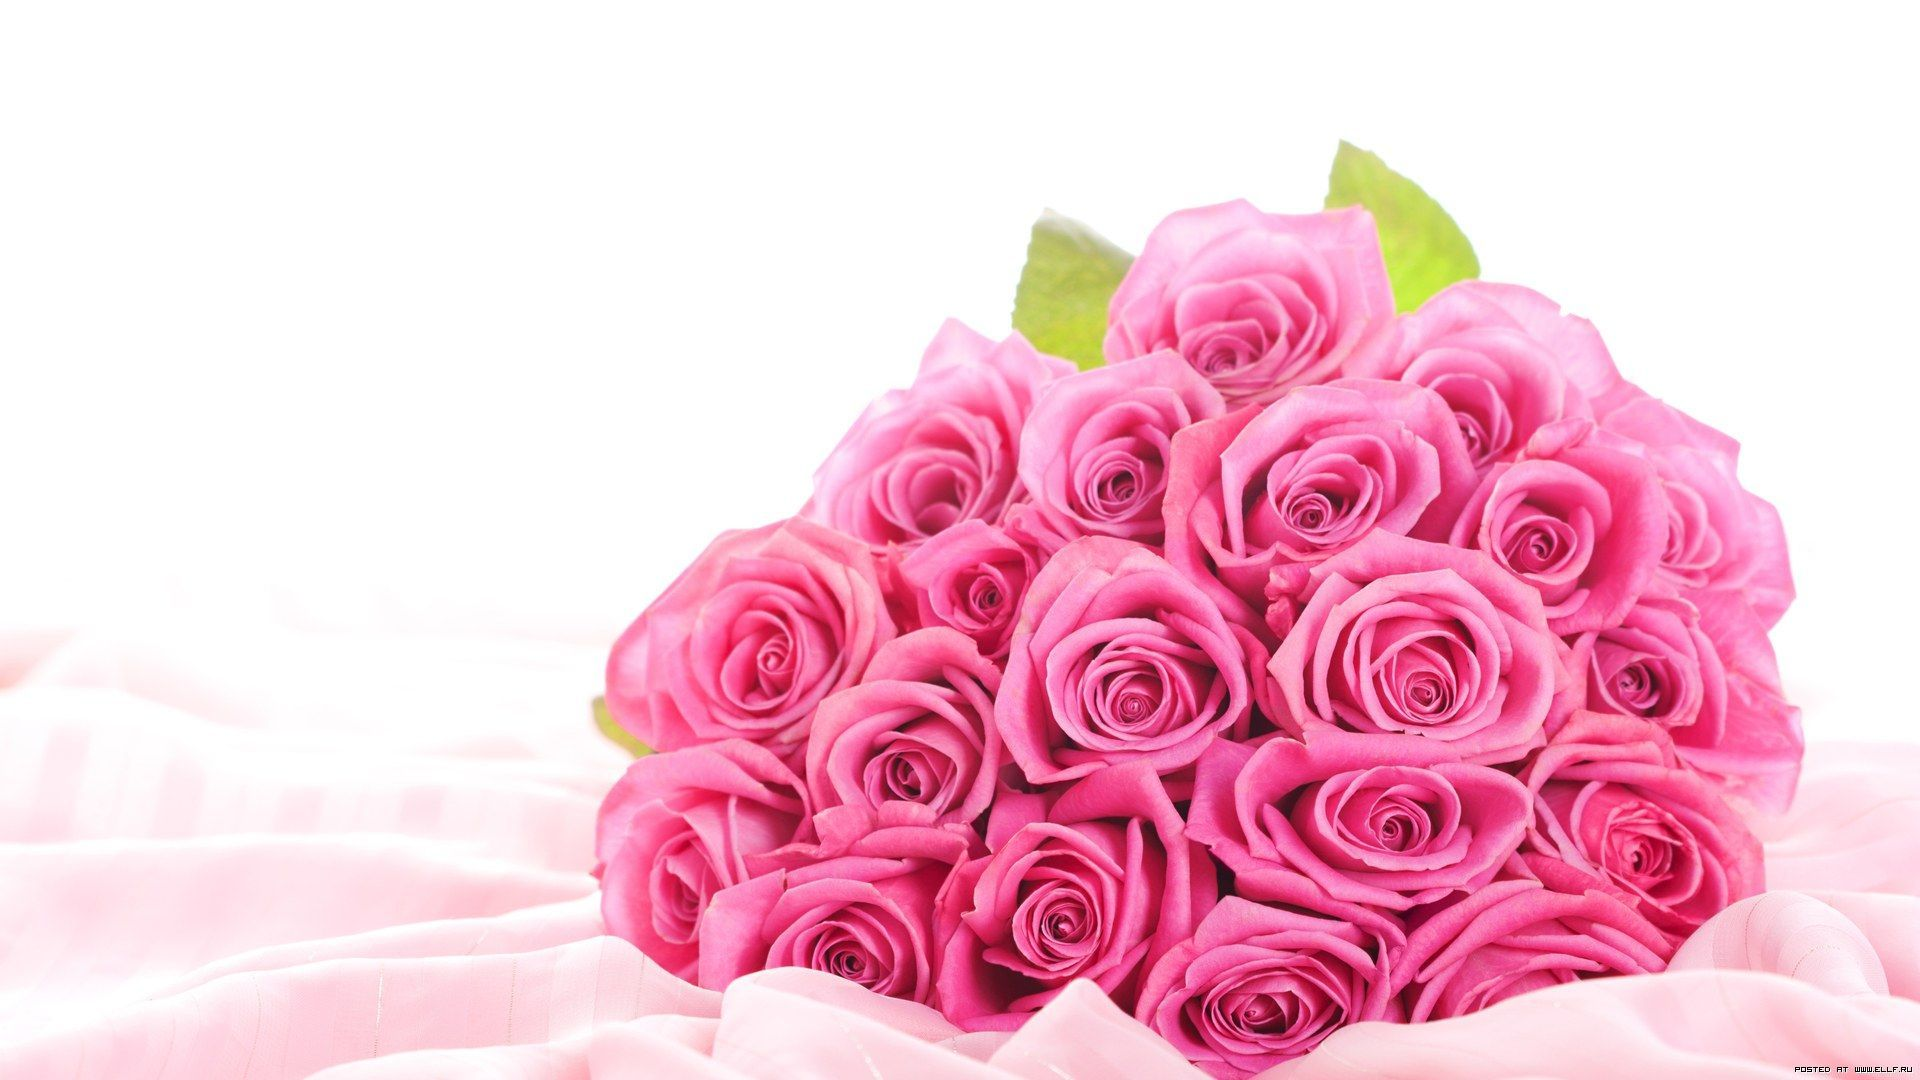 Roses flowers wallpaper etamemibawa roses flowers wallpaper izmirmasajfo Image collections